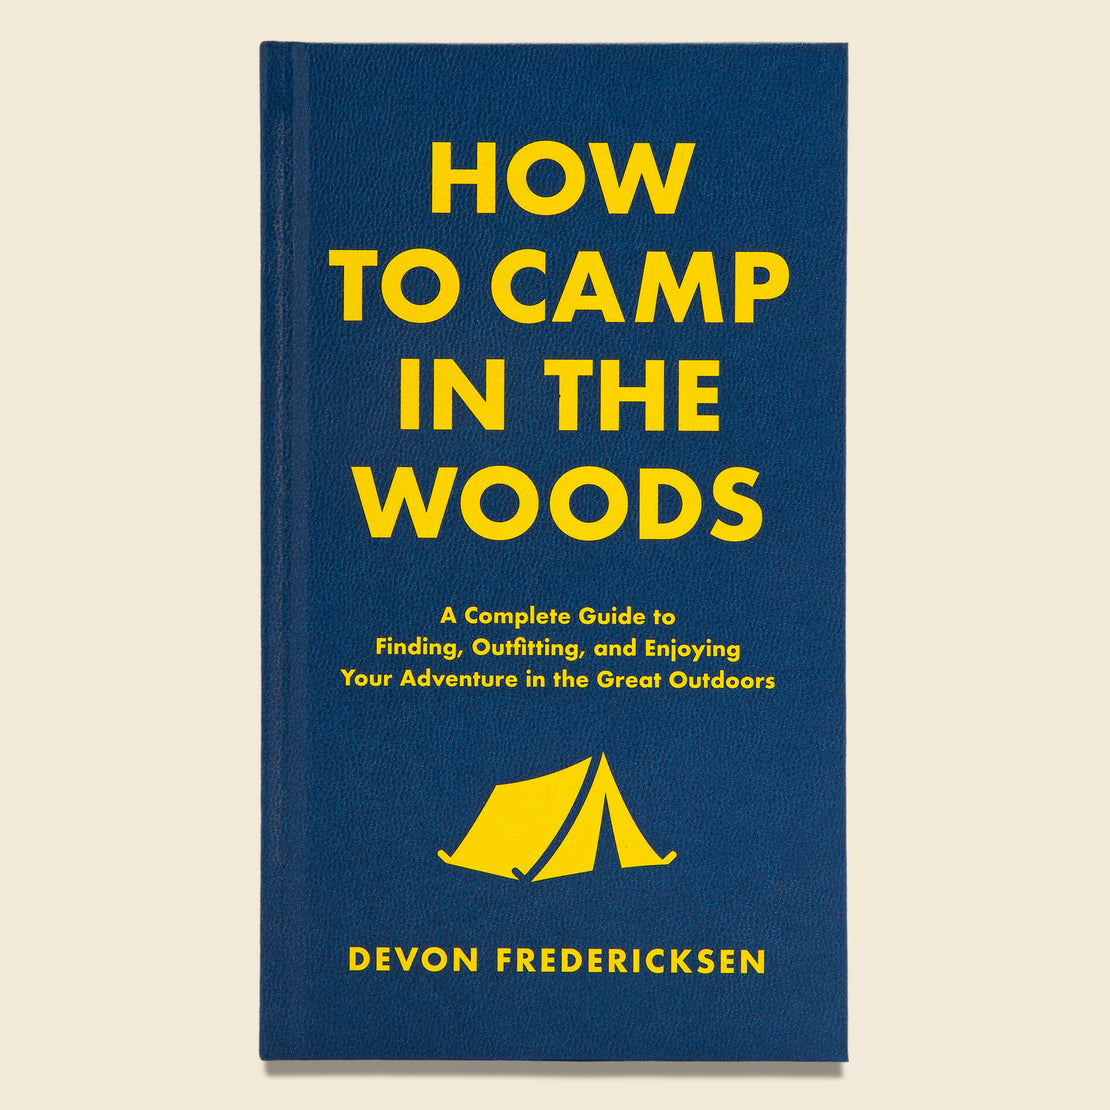 Bookstore How to Camp in the Woods - Devon Fredericksen